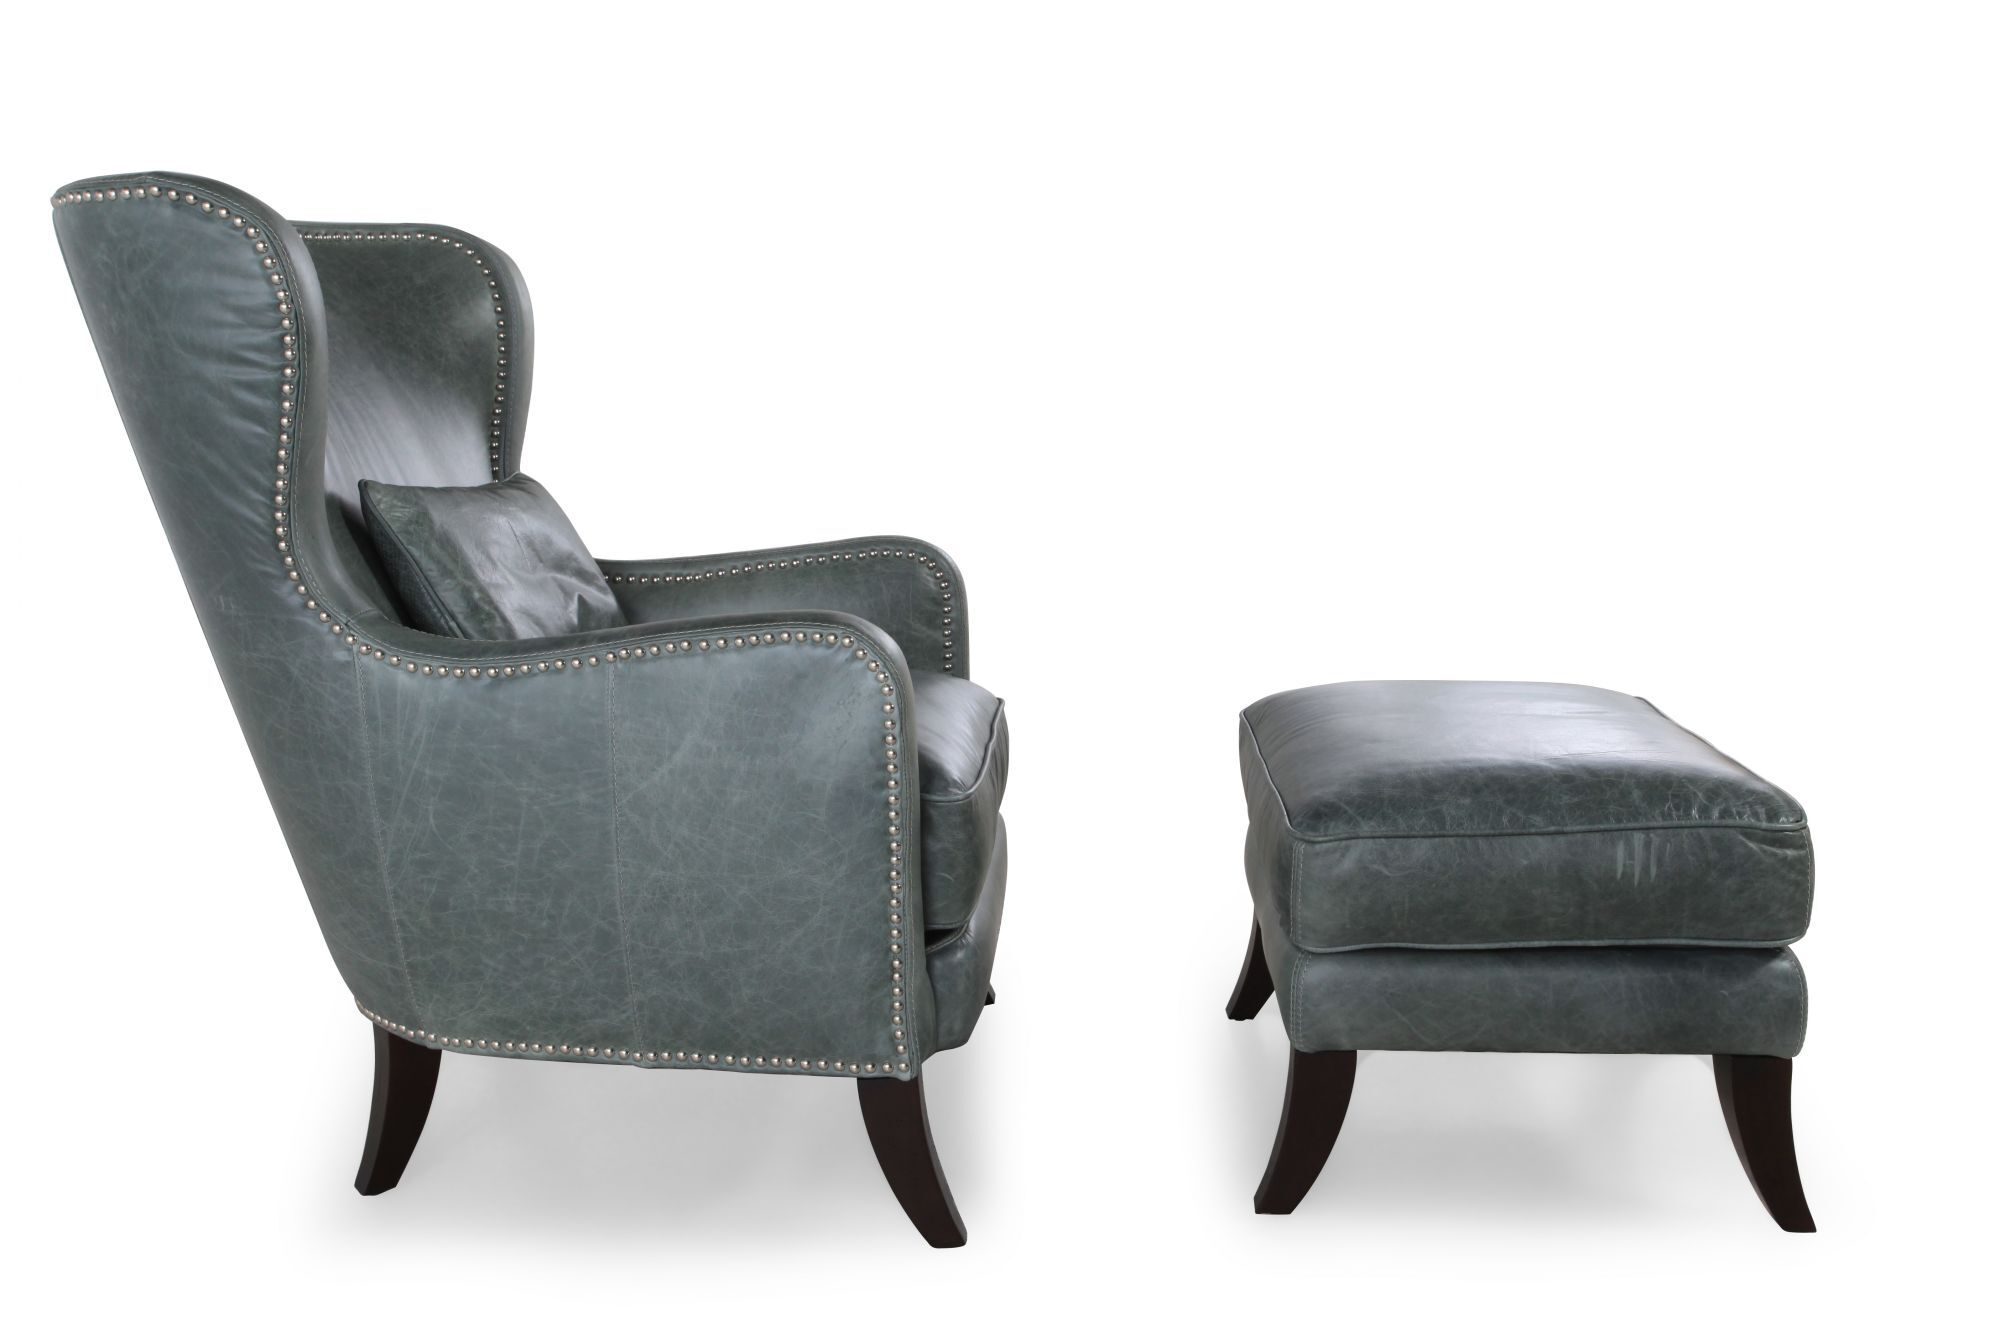 Teal Leather Chair Leather Chair And Ottoman In Teal Mathis Brothers Furniture